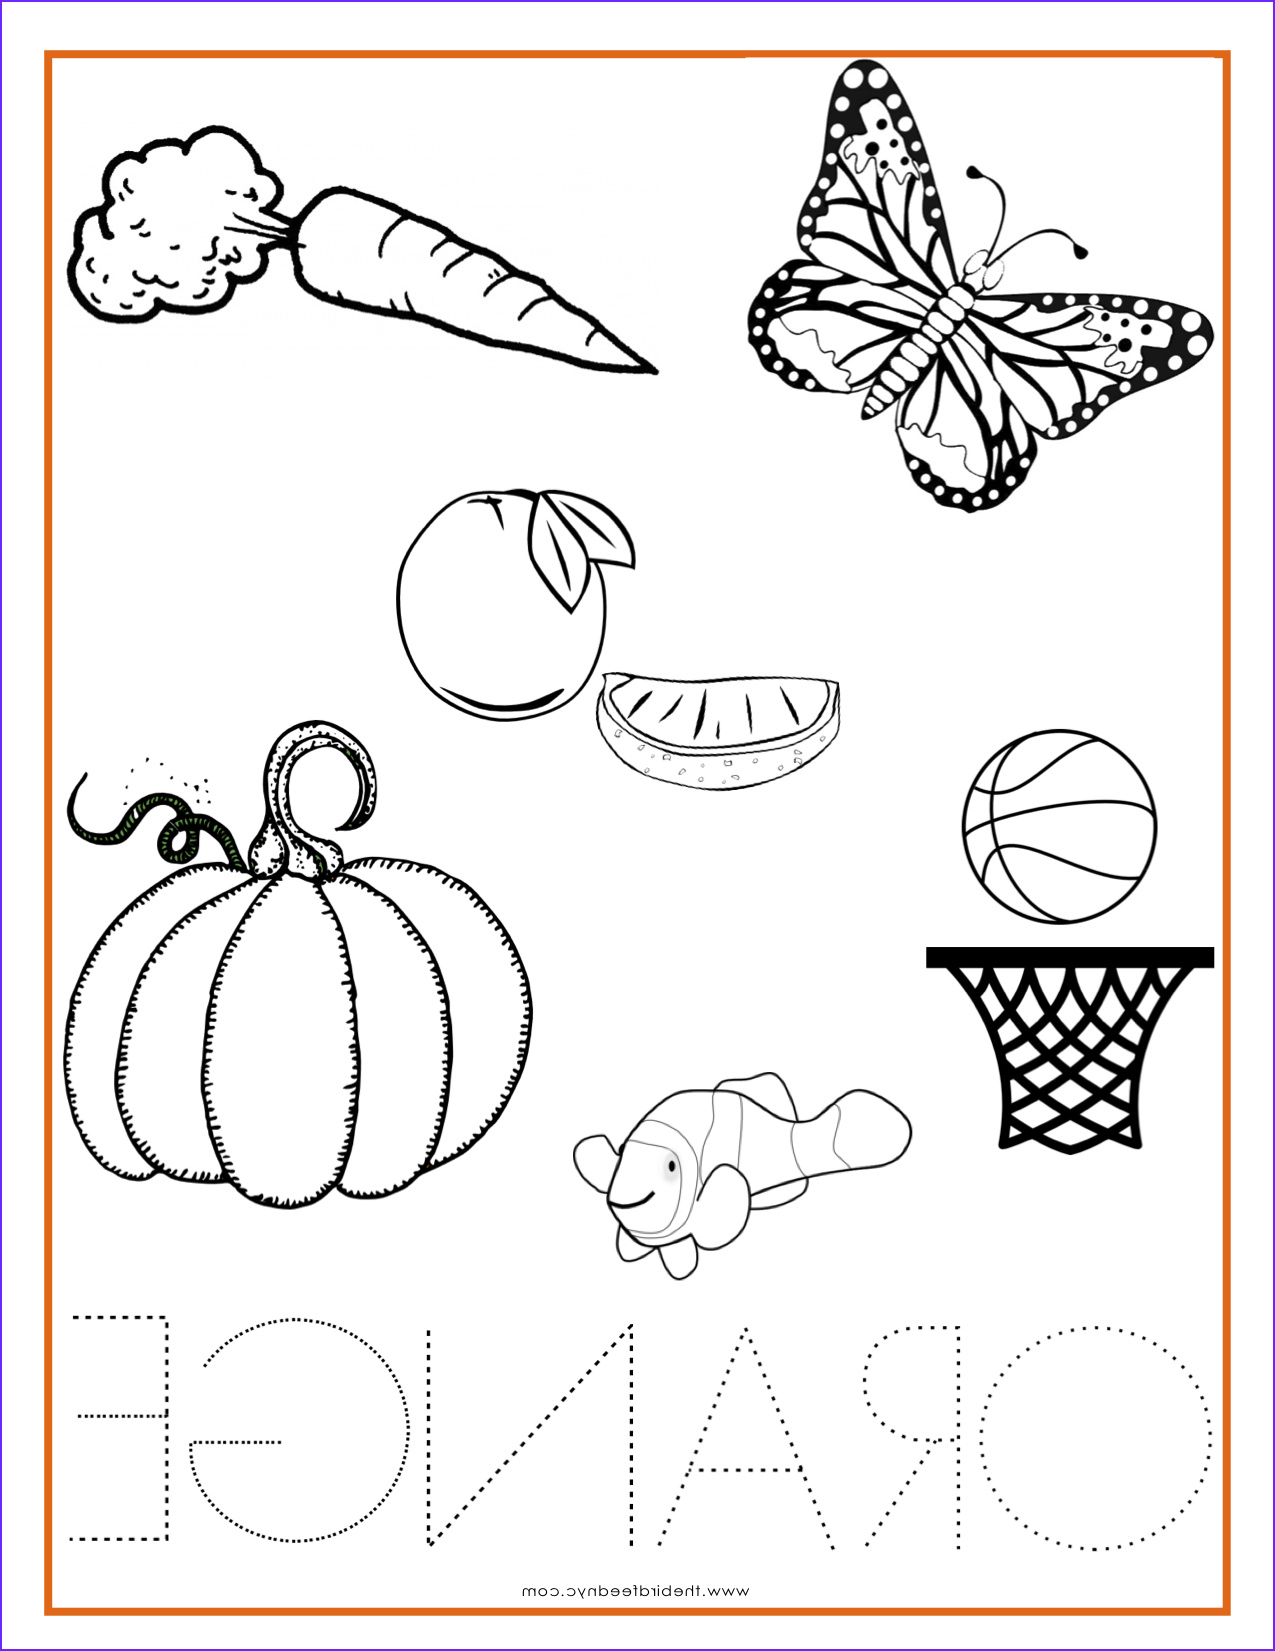 Red Coloring Sheet Best Of Gallery Things that are Red Coloring Pages at Getcolorings